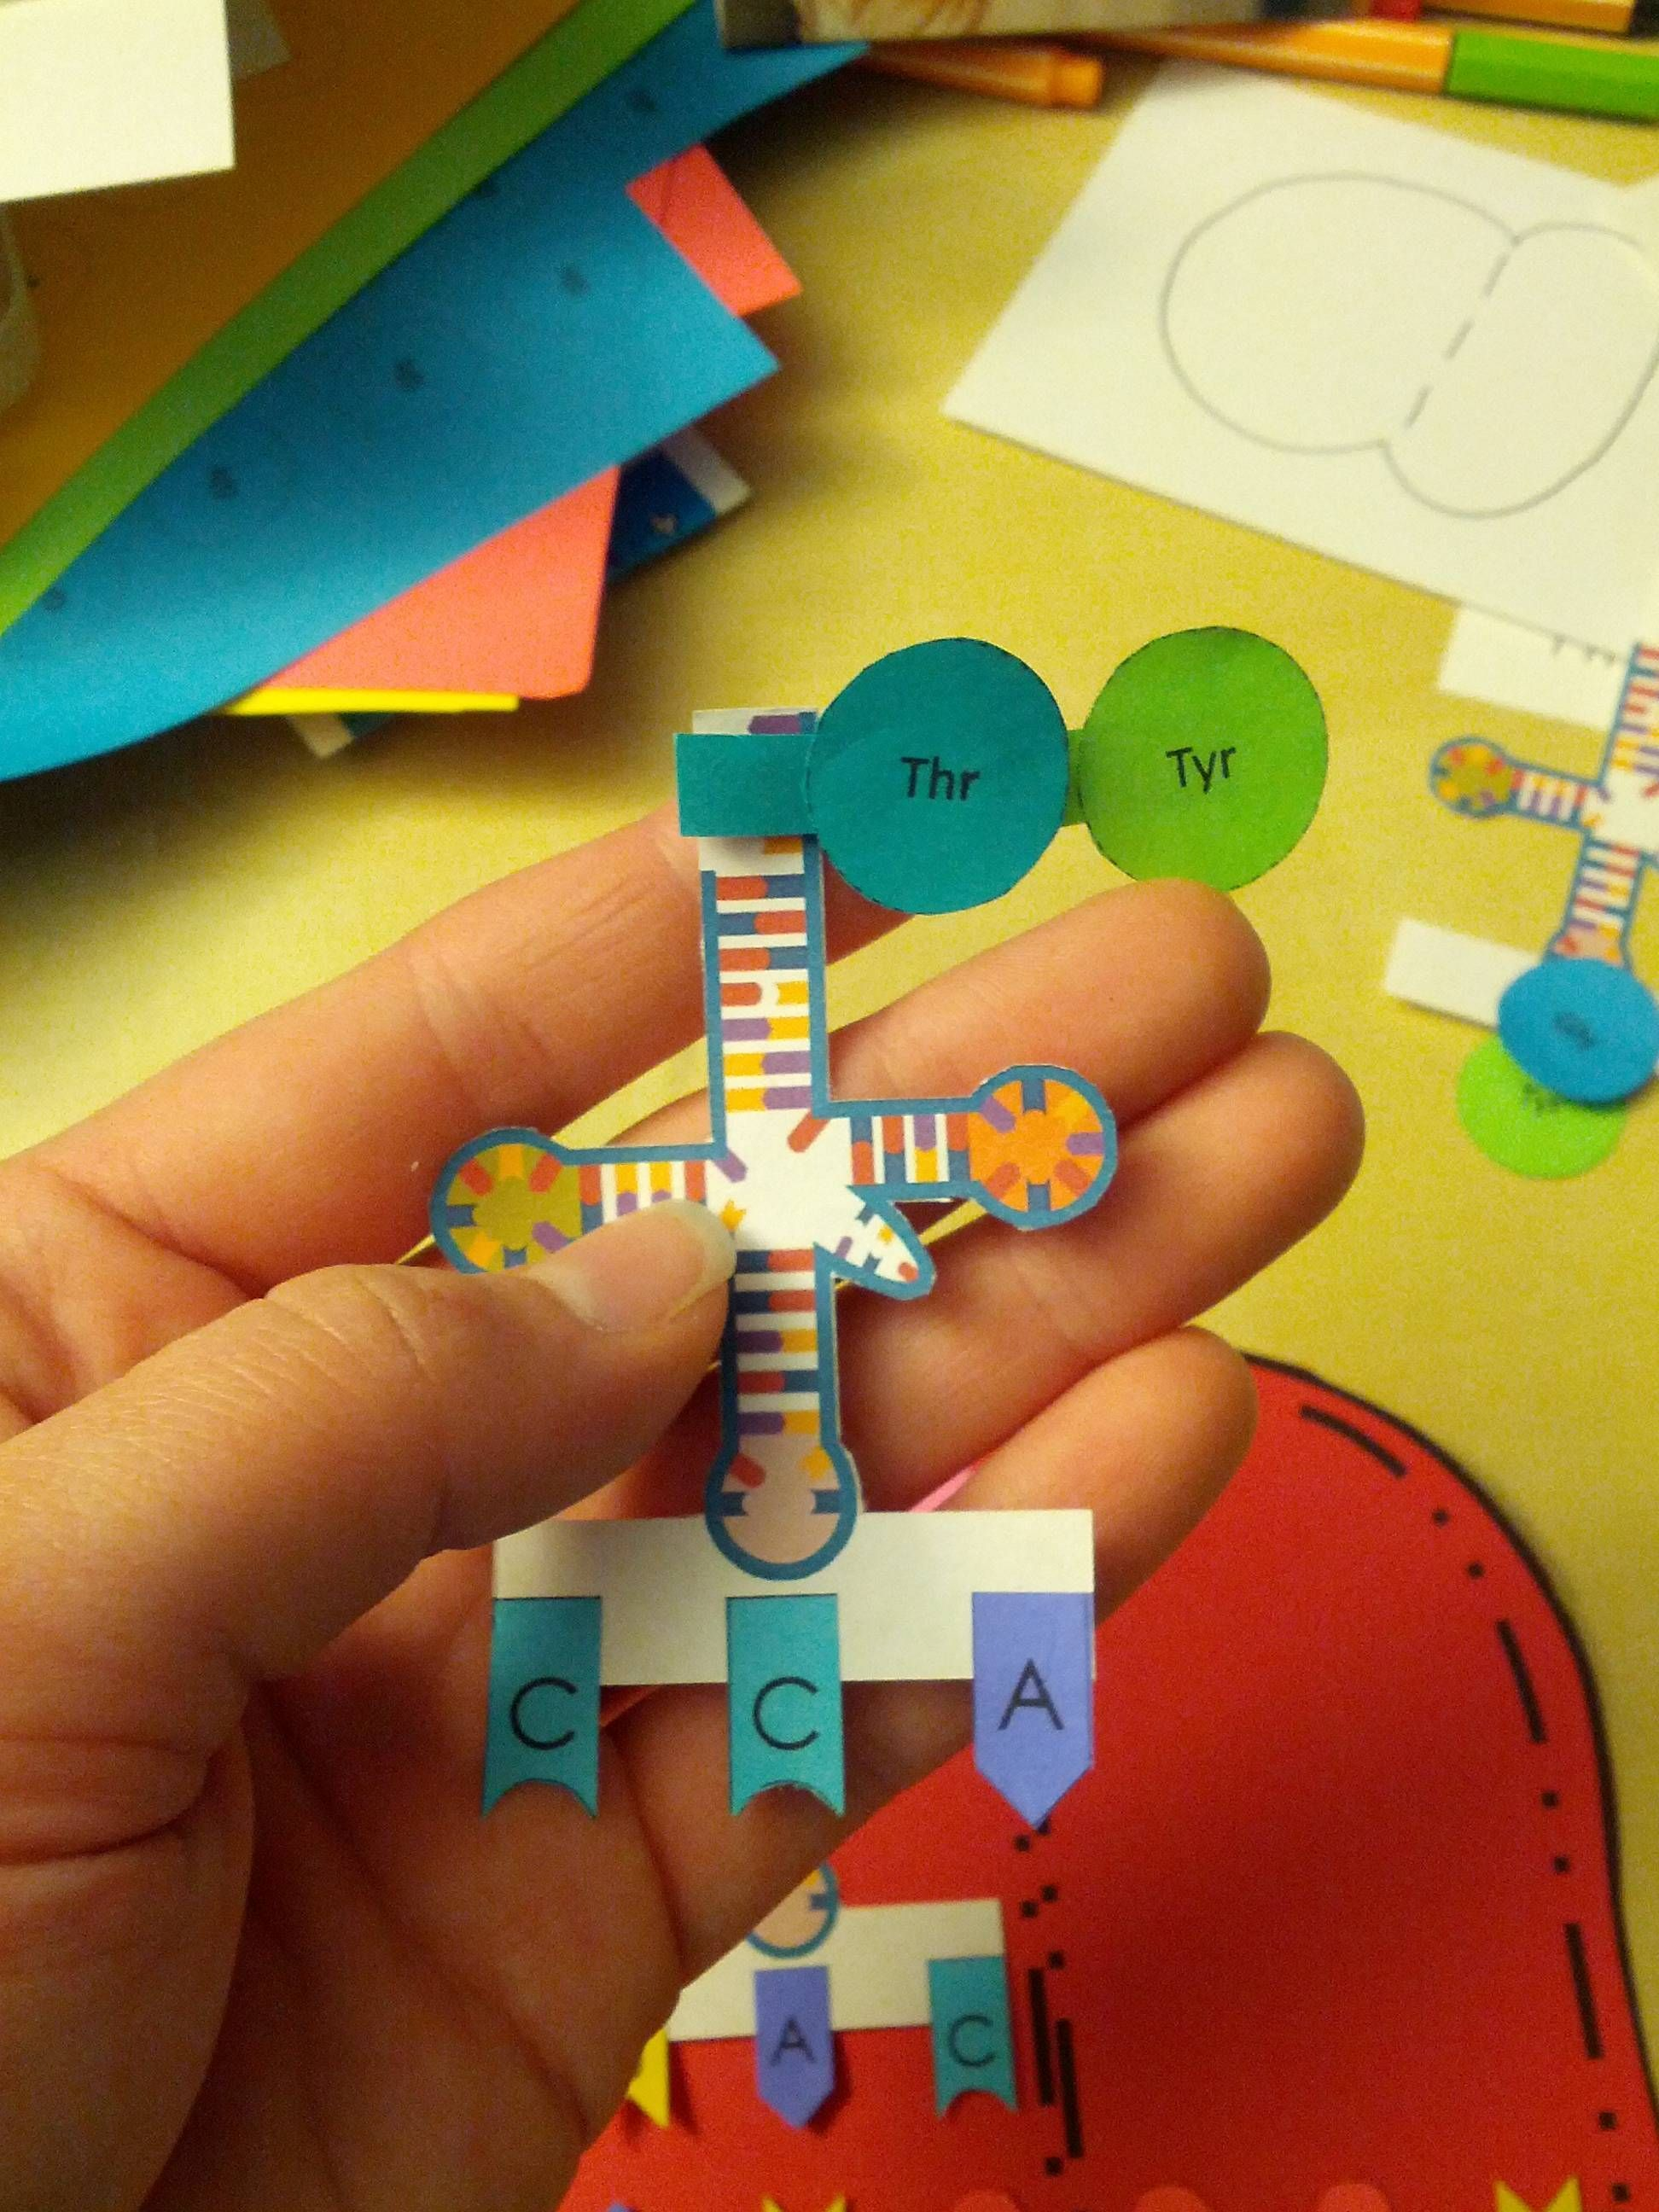 Protein Synthesis Paper Model Activity Science Class